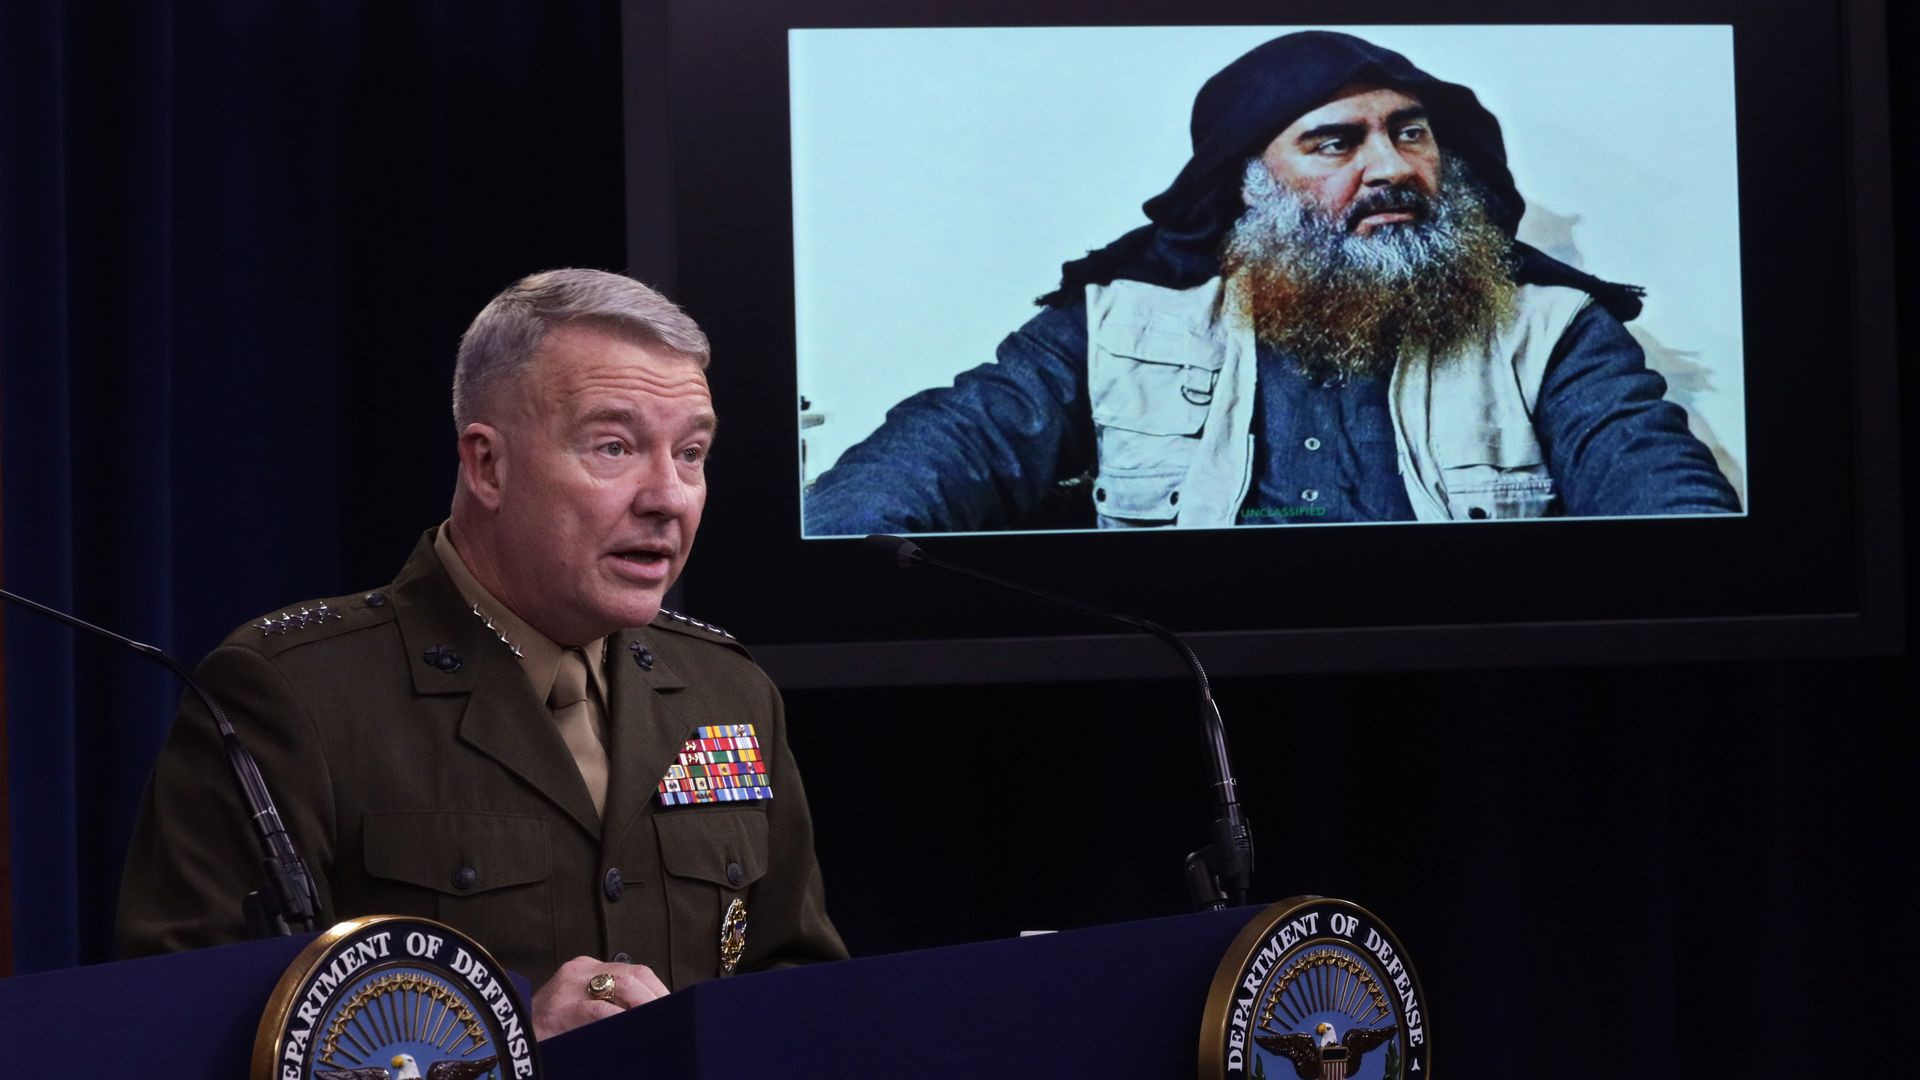 U.S. Marine Corps Gen. Kenneth McKenzie, commander of U.S. Central Command, speaks as a picture of Abu Bakr al-Baghdadi is seen during a press briefing